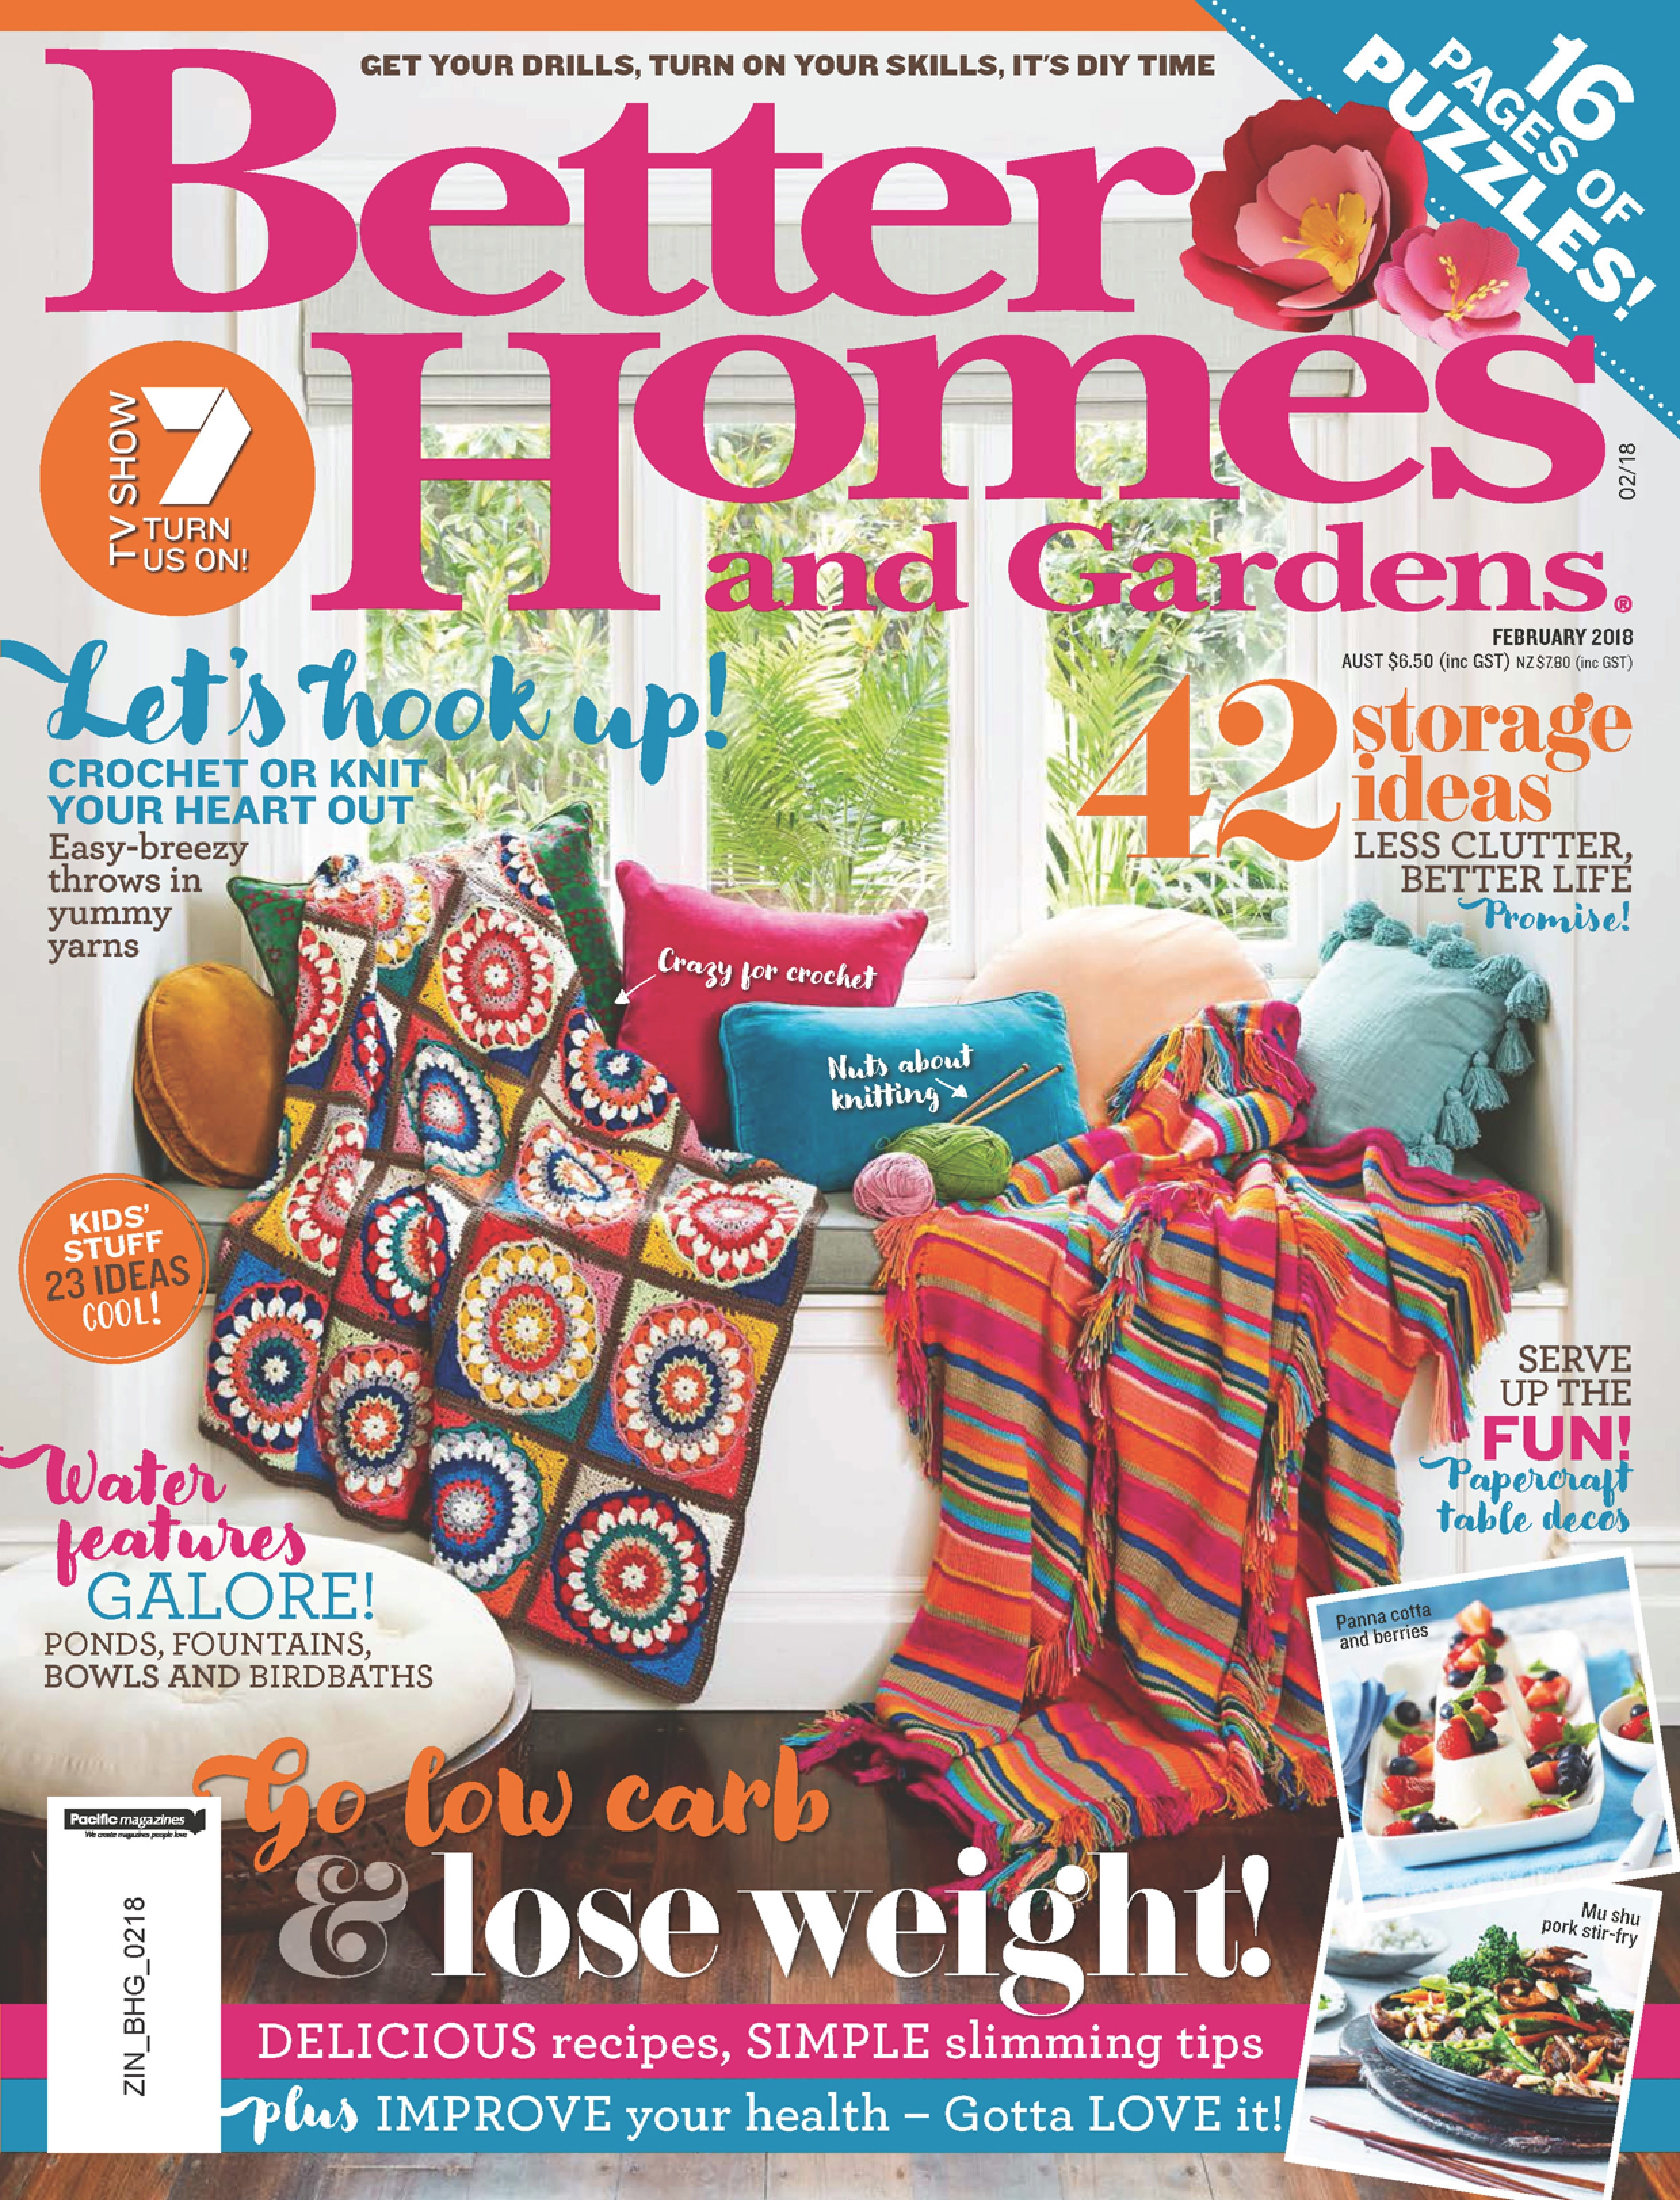 Better Homes And Gardens Australia Digital Subscription | Zinio Unlimited